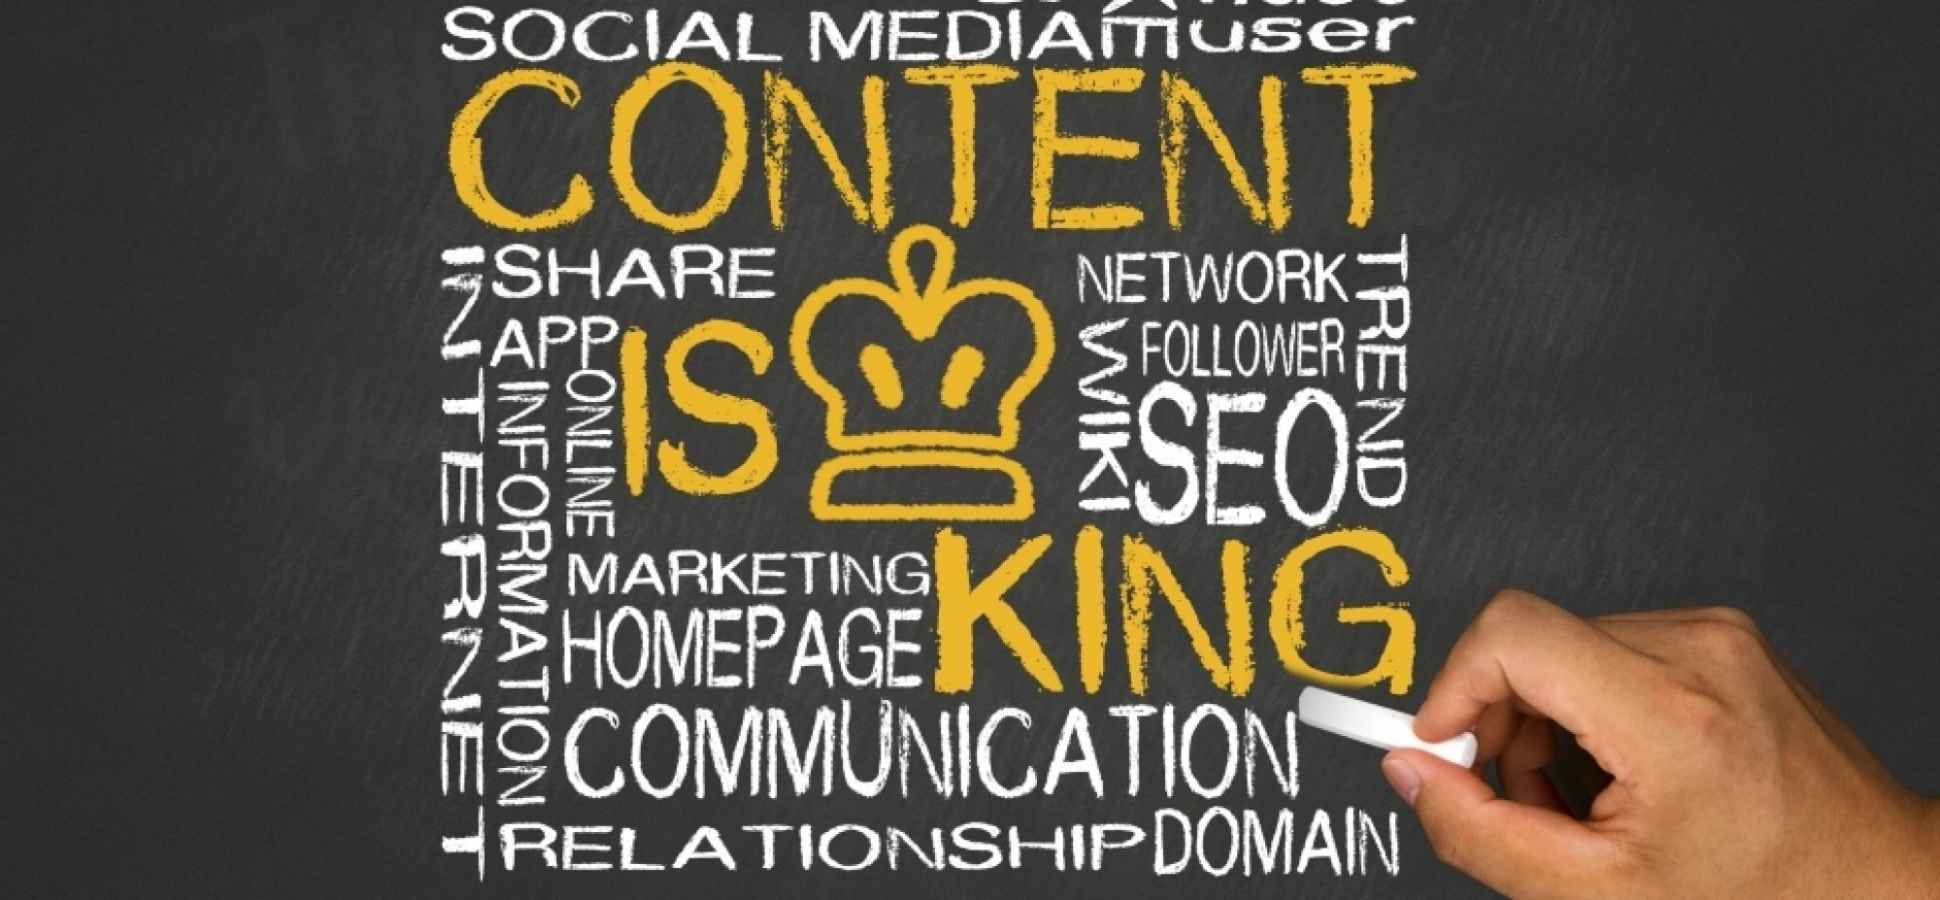 50 Content Marketing Tips to Maximize Traffic, Leads, and Sales